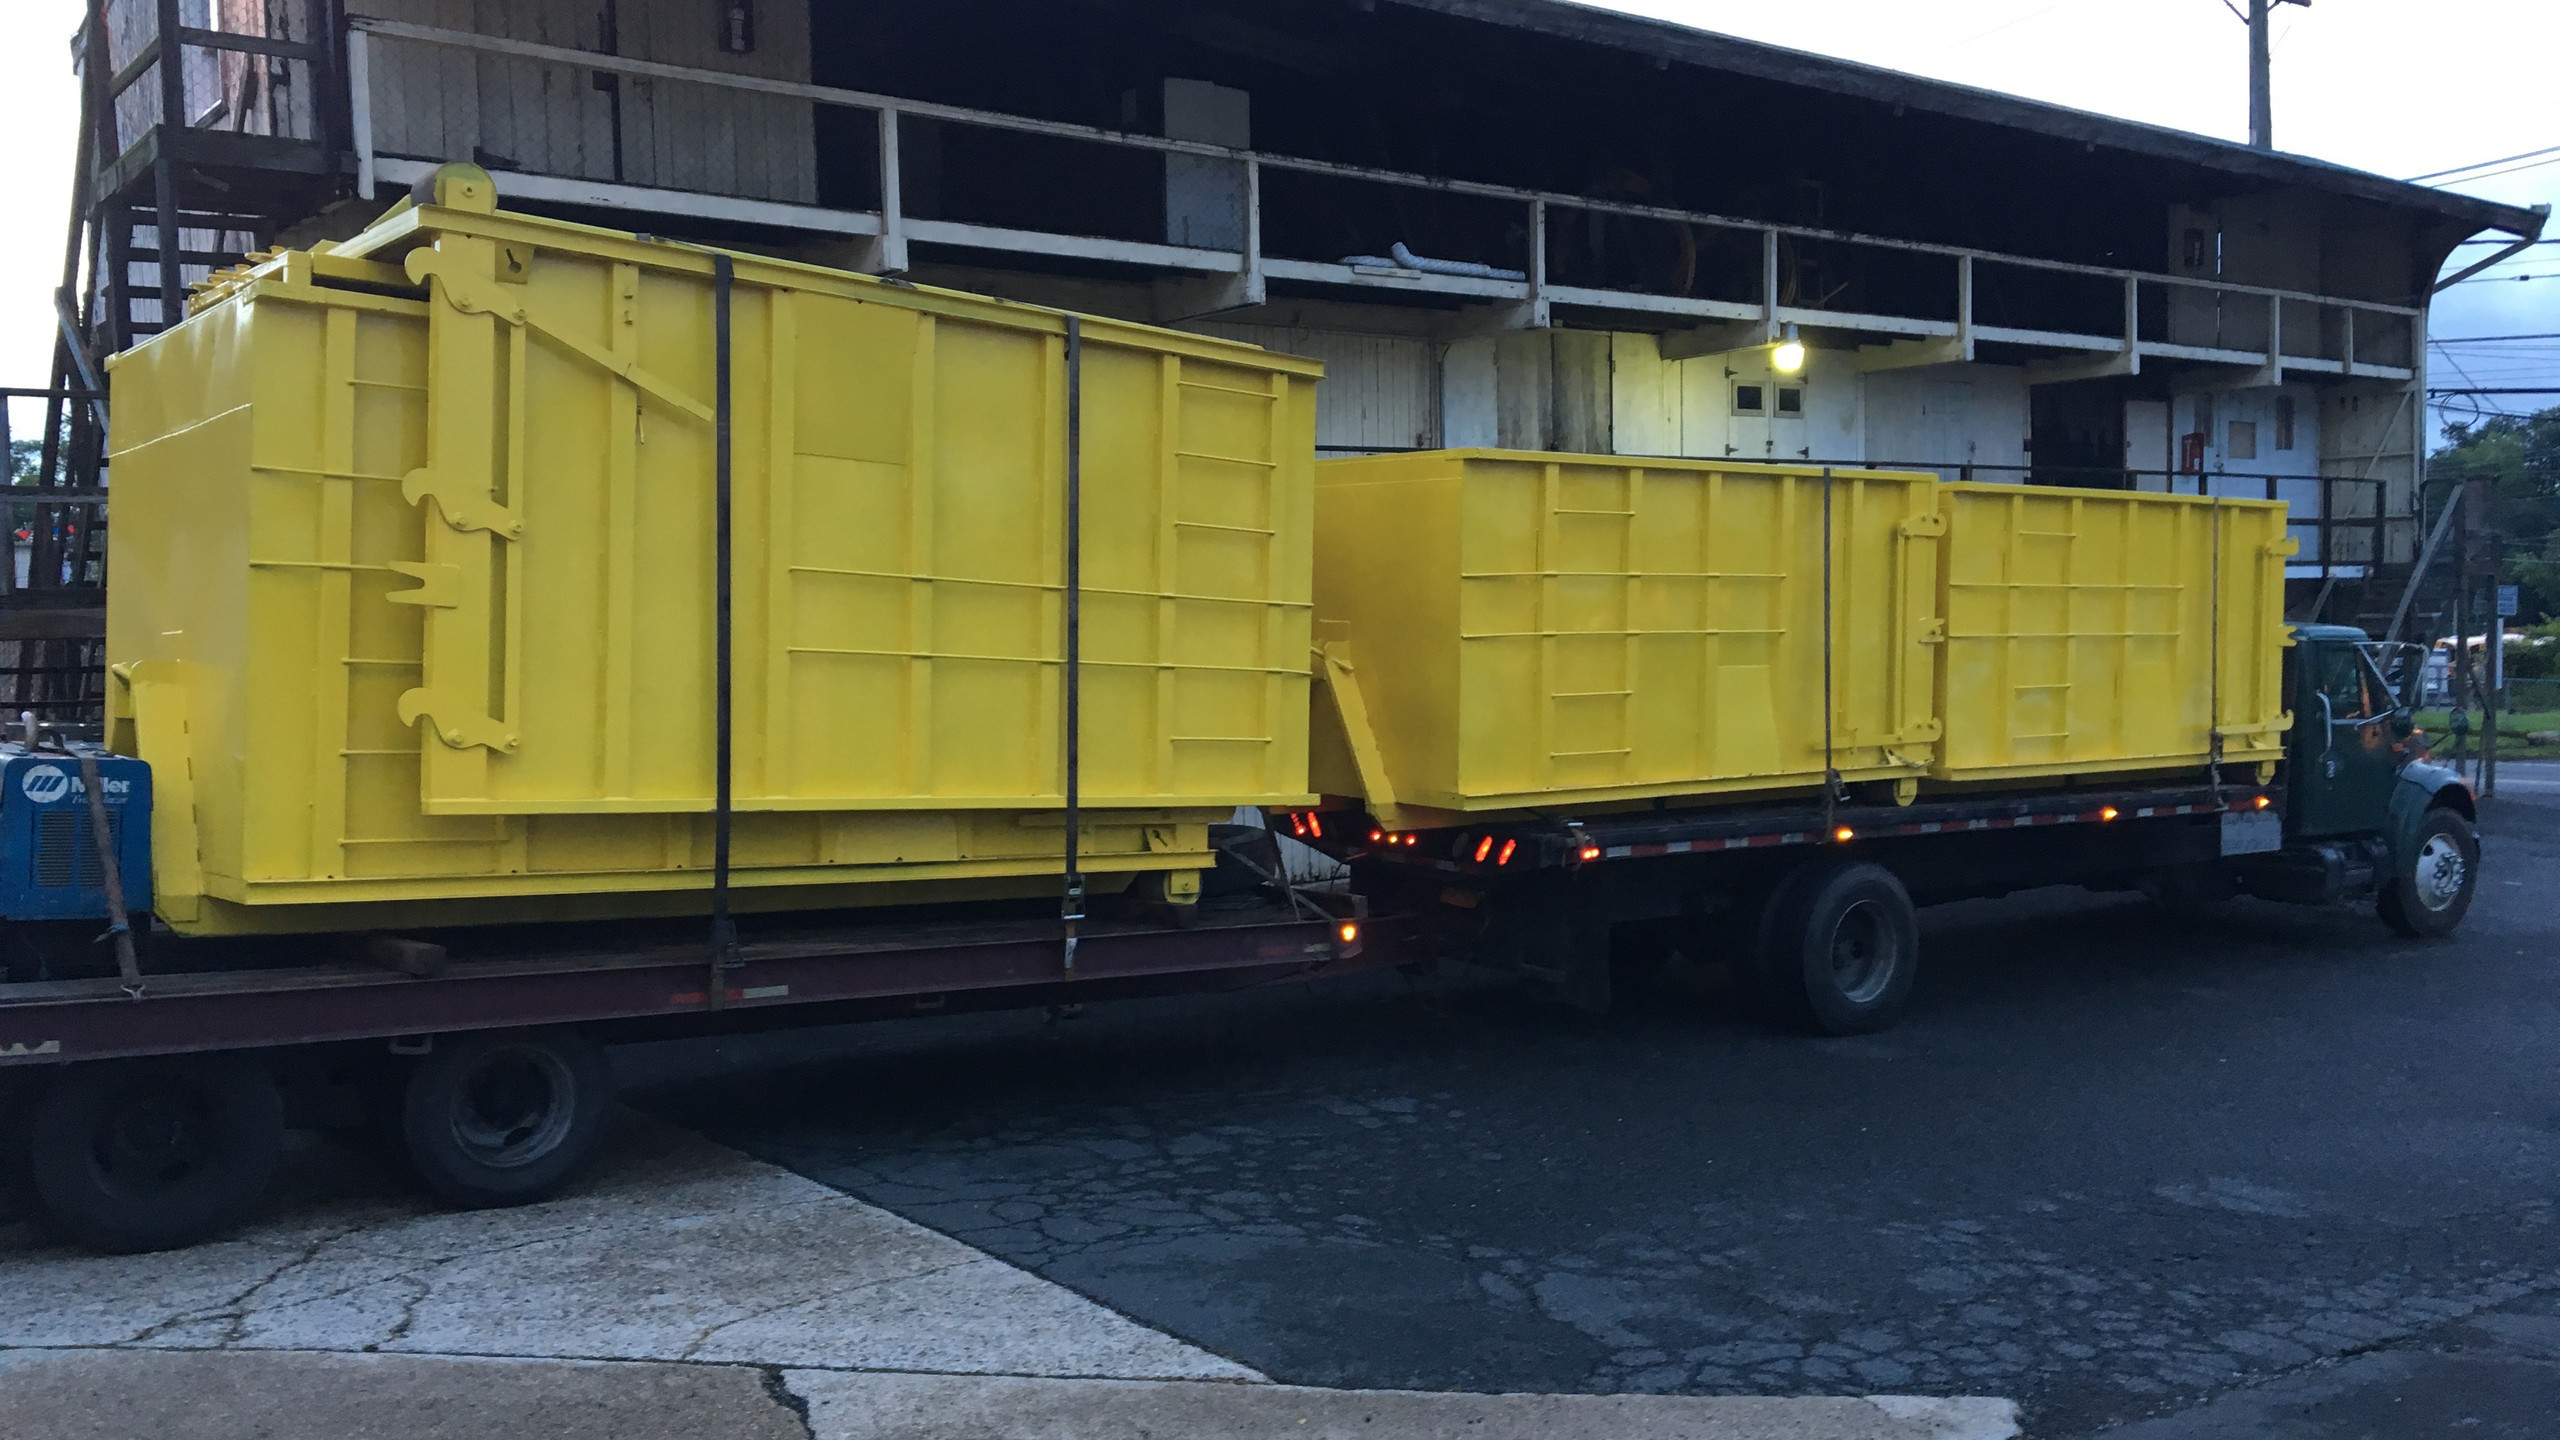 New Little Yellow Dumpsters.